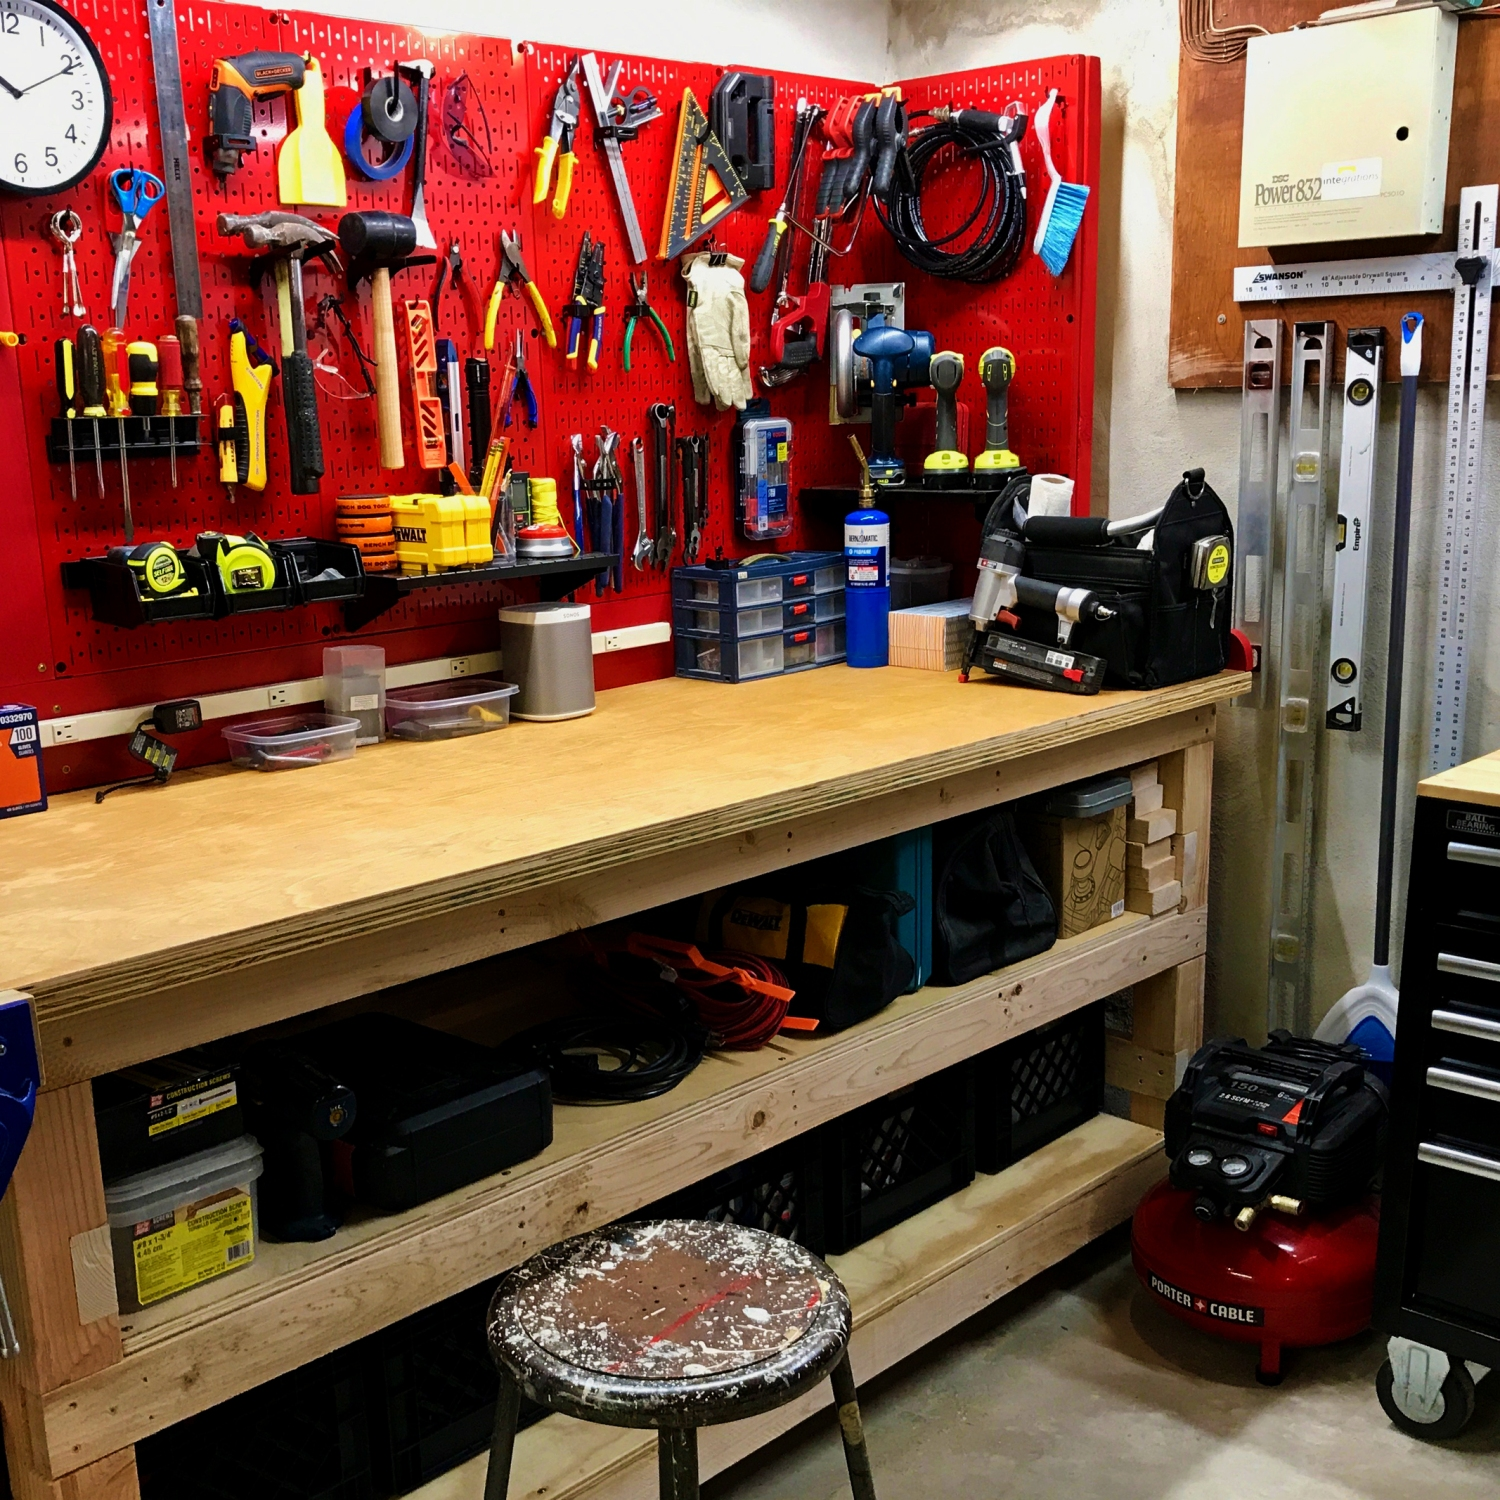 Wooden work bench with red peg board covered in tools